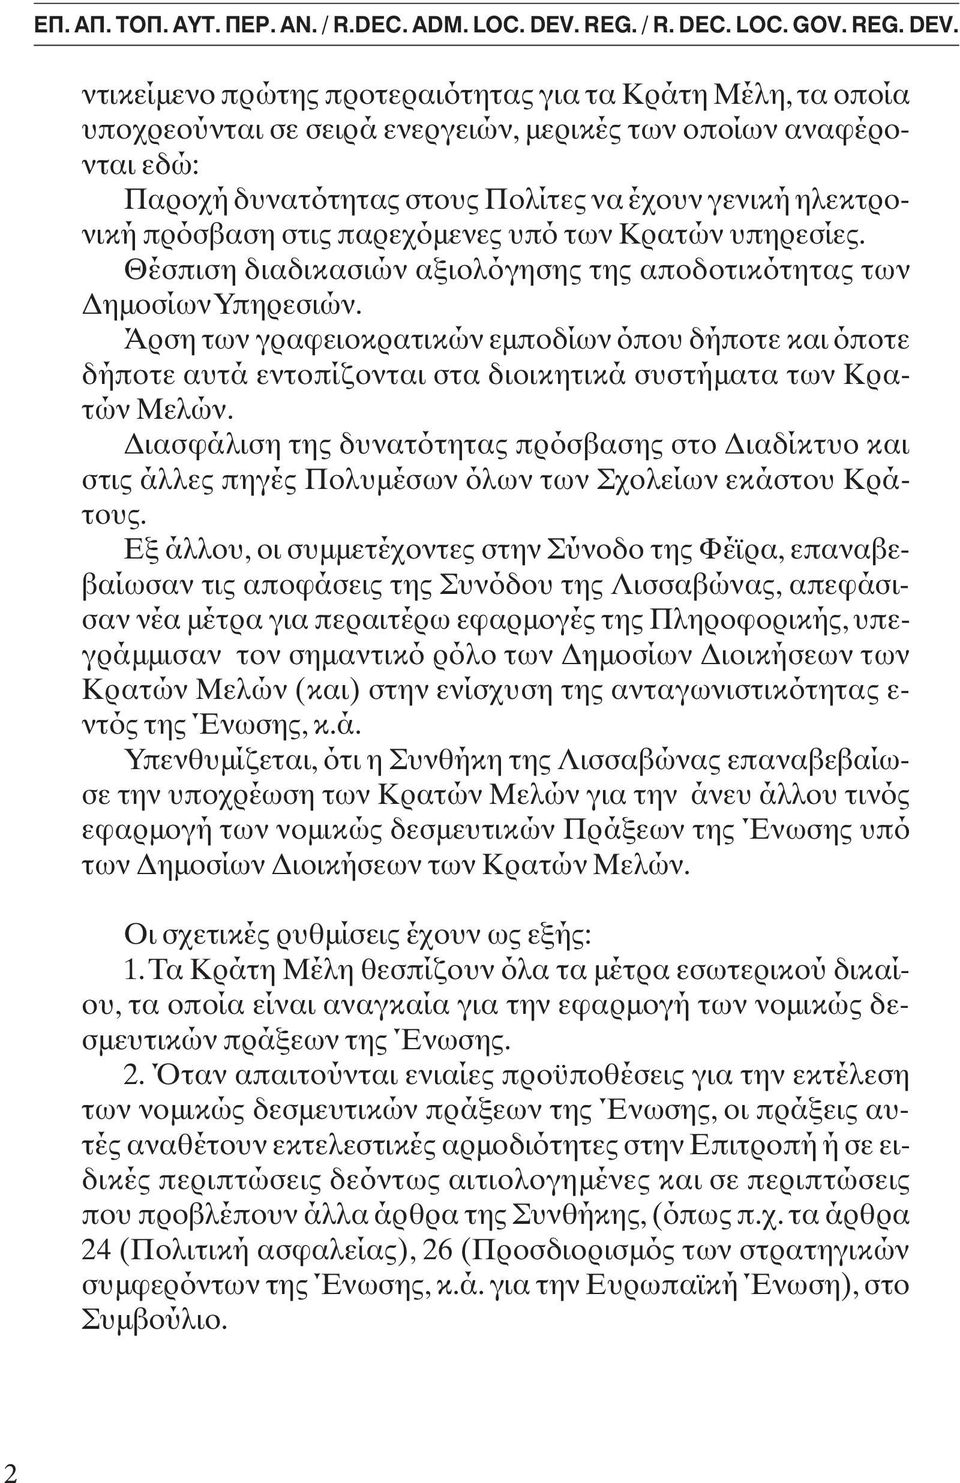 Types Intervention, Definition, Types Gentrification intervention, competence ντικείµεν πρώτης state affairs πρ τεραι τητας in ir Region, για τα based Κράτη on Article Μέλη, τα 101 π ία current